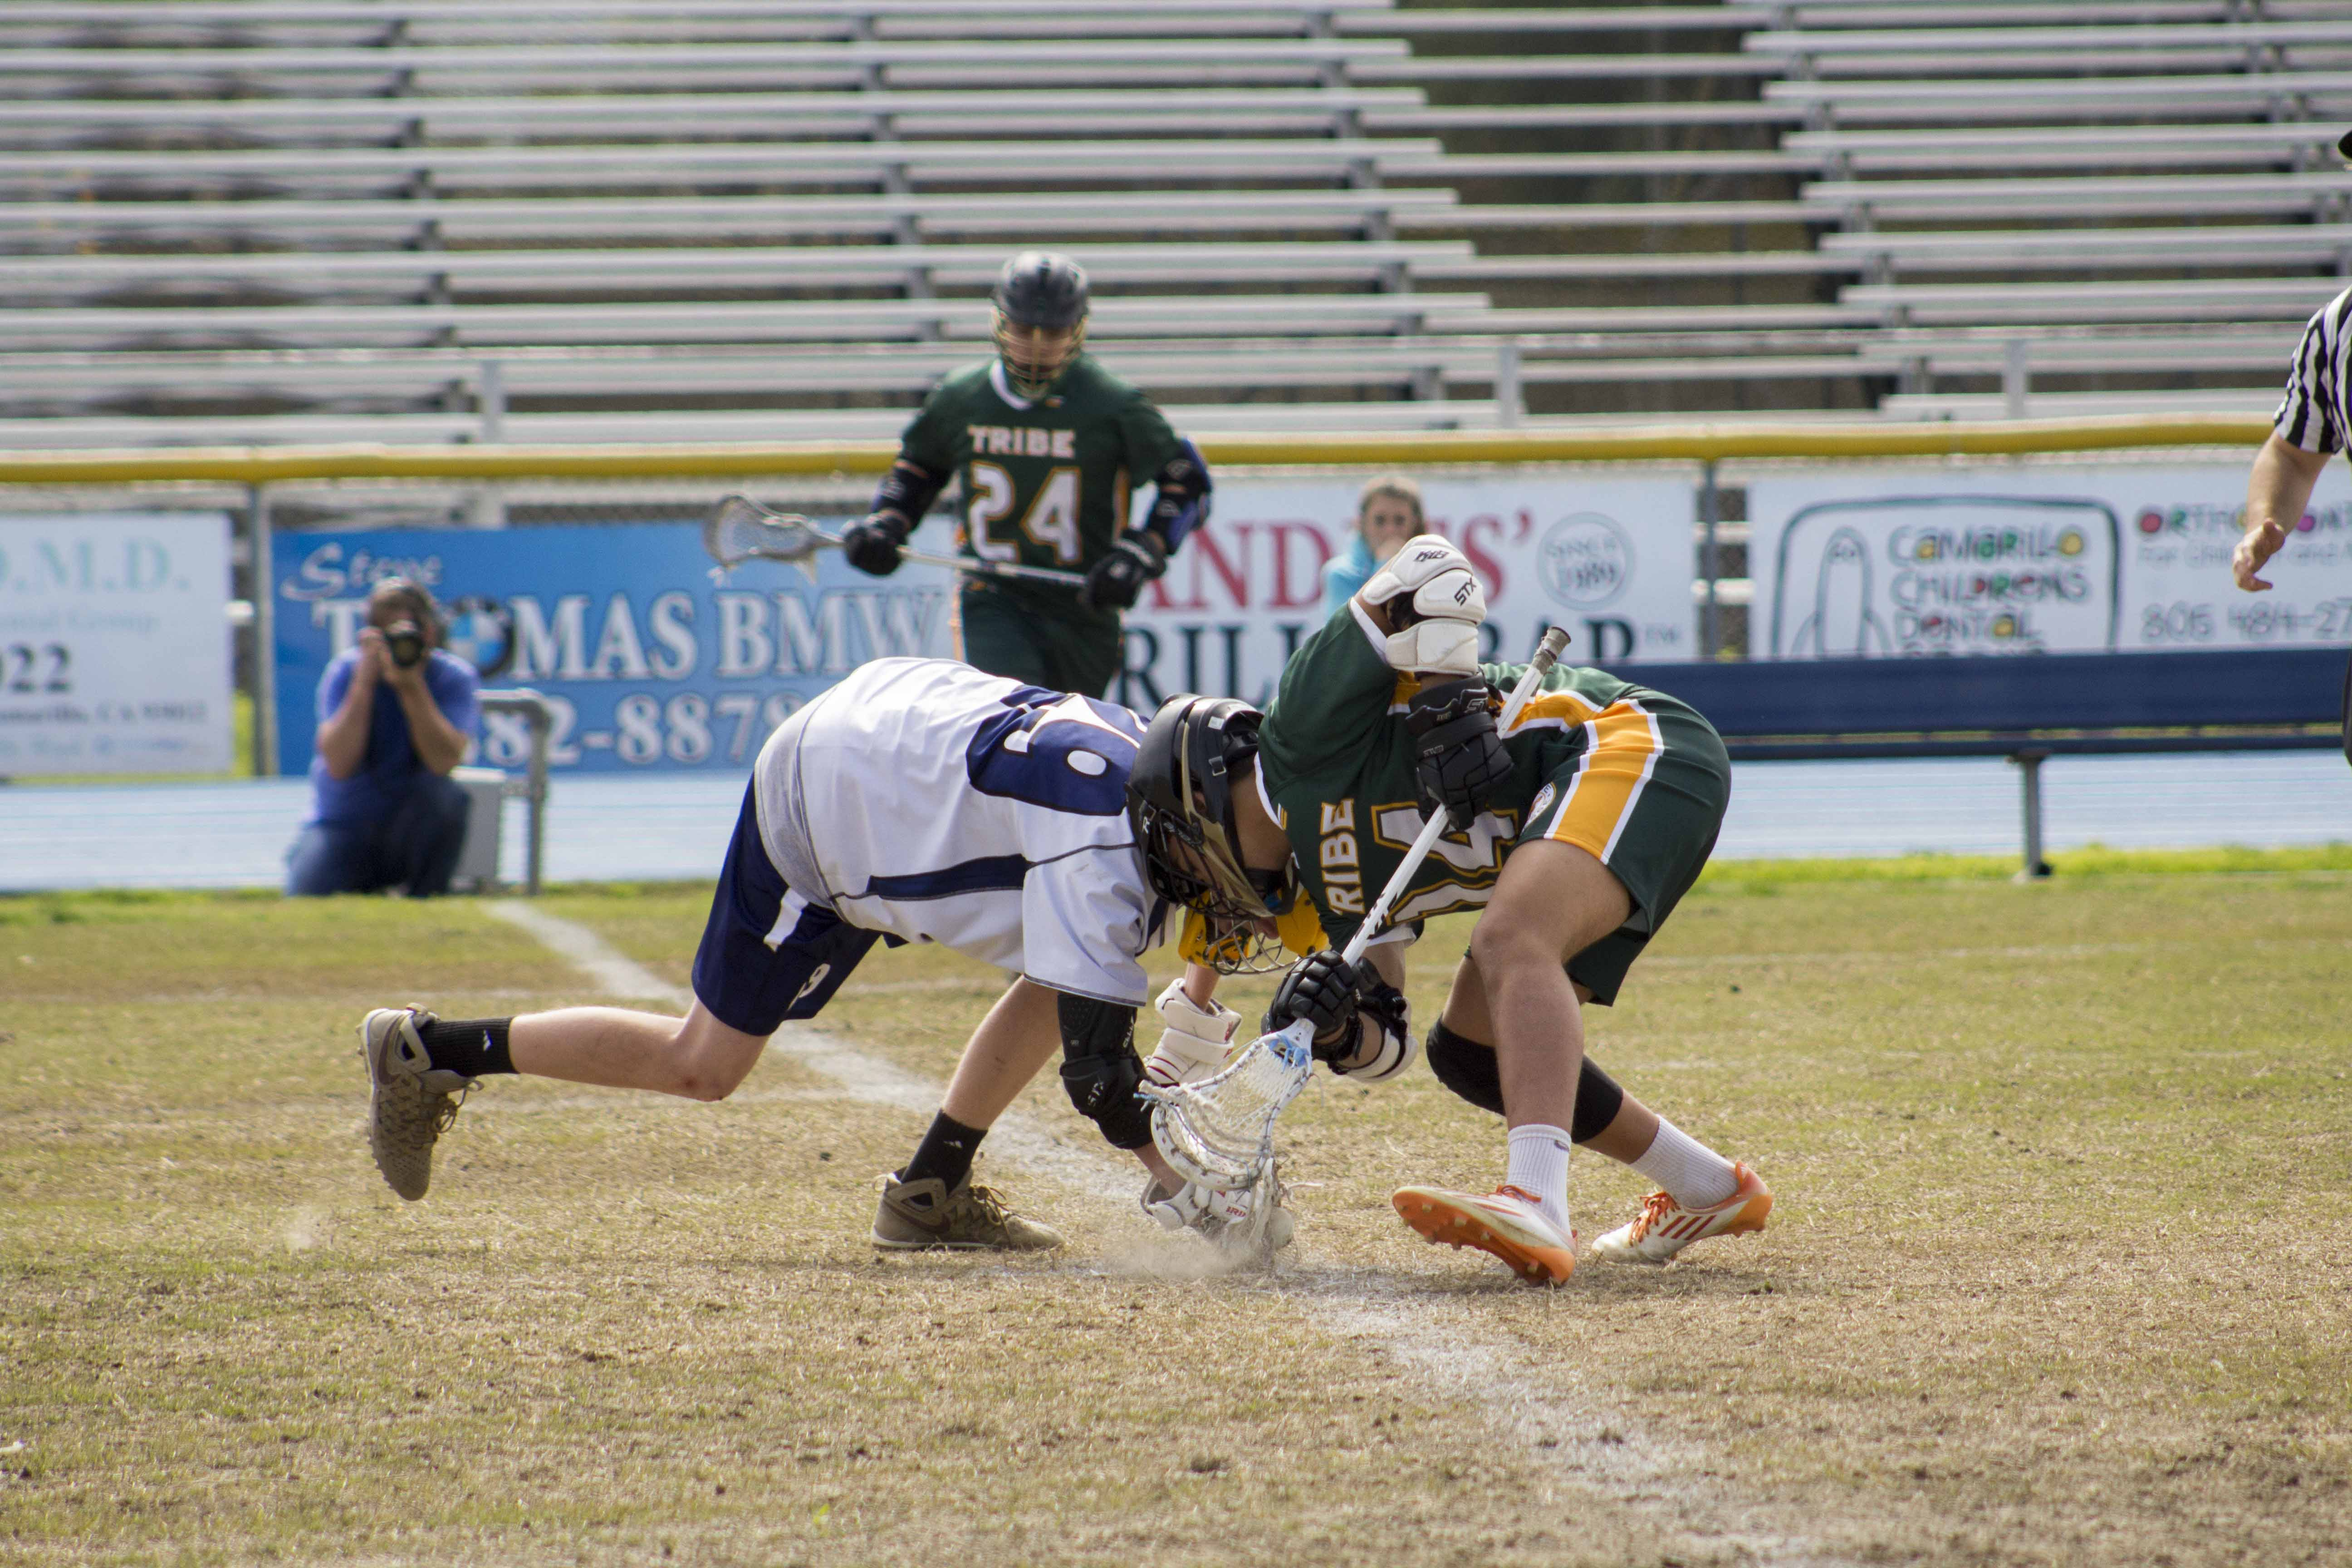 Brody Stoughton faces off with a Pasadena Tribe player.